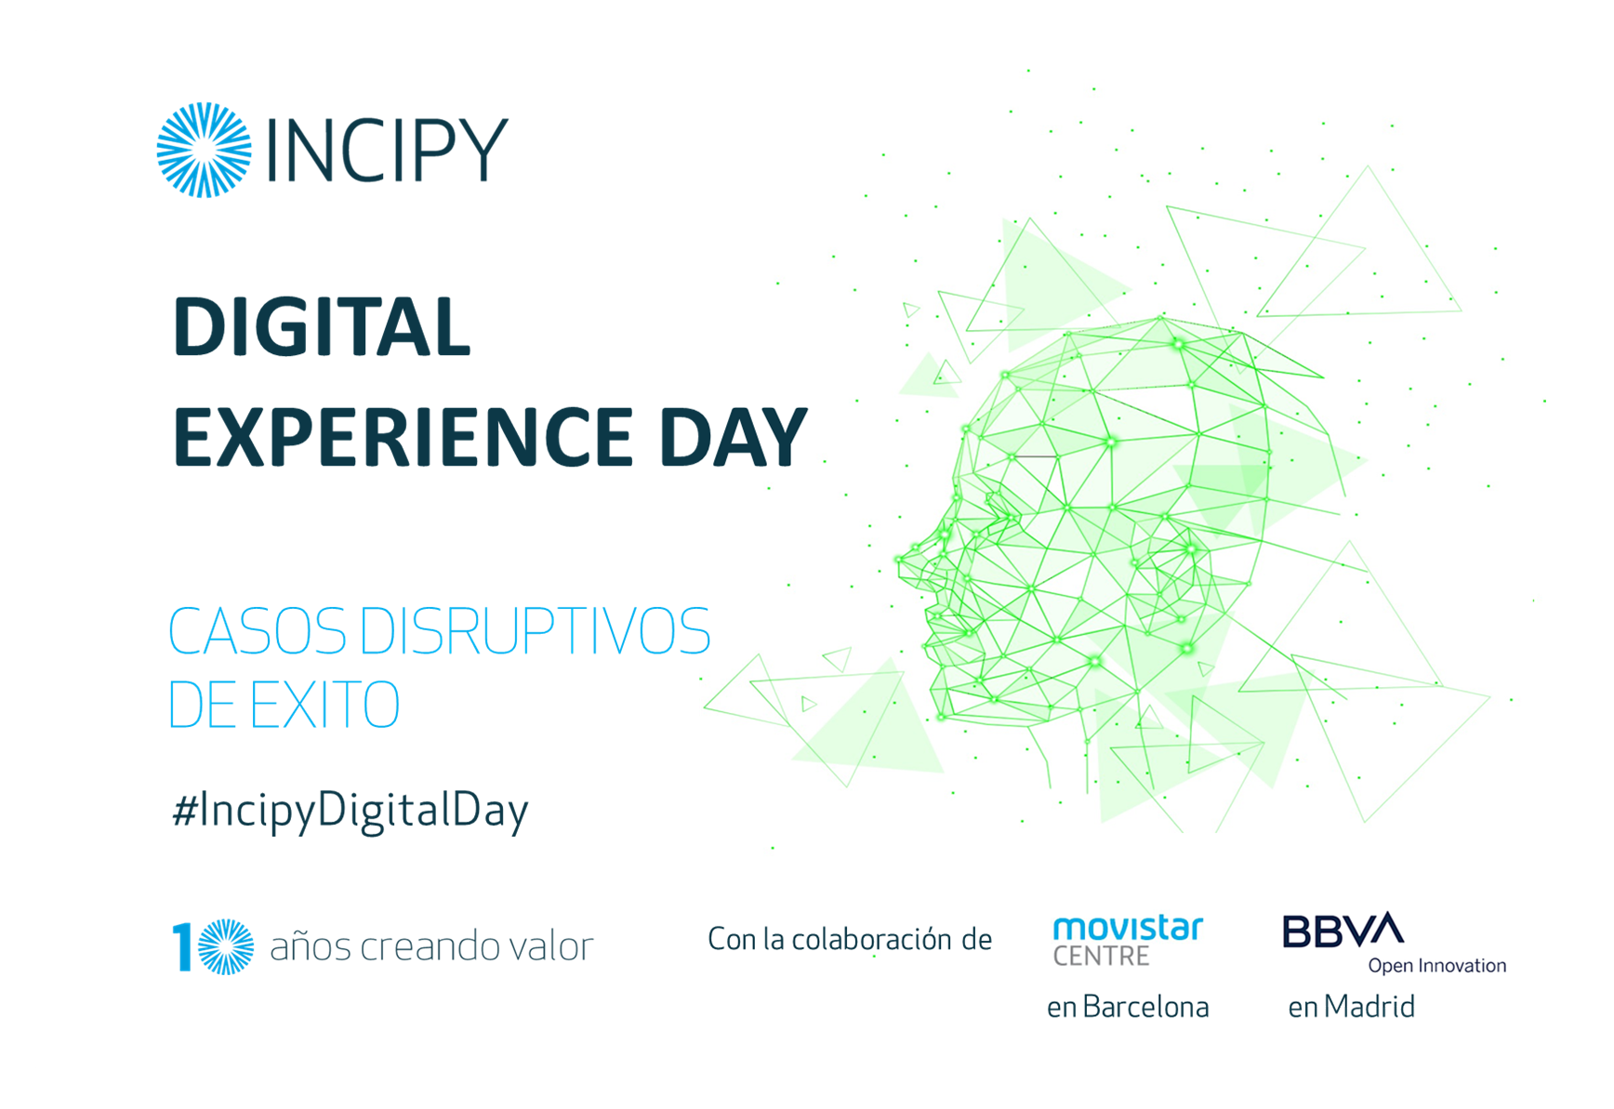 Incipy Digital Experience Day Casos Disruptivos